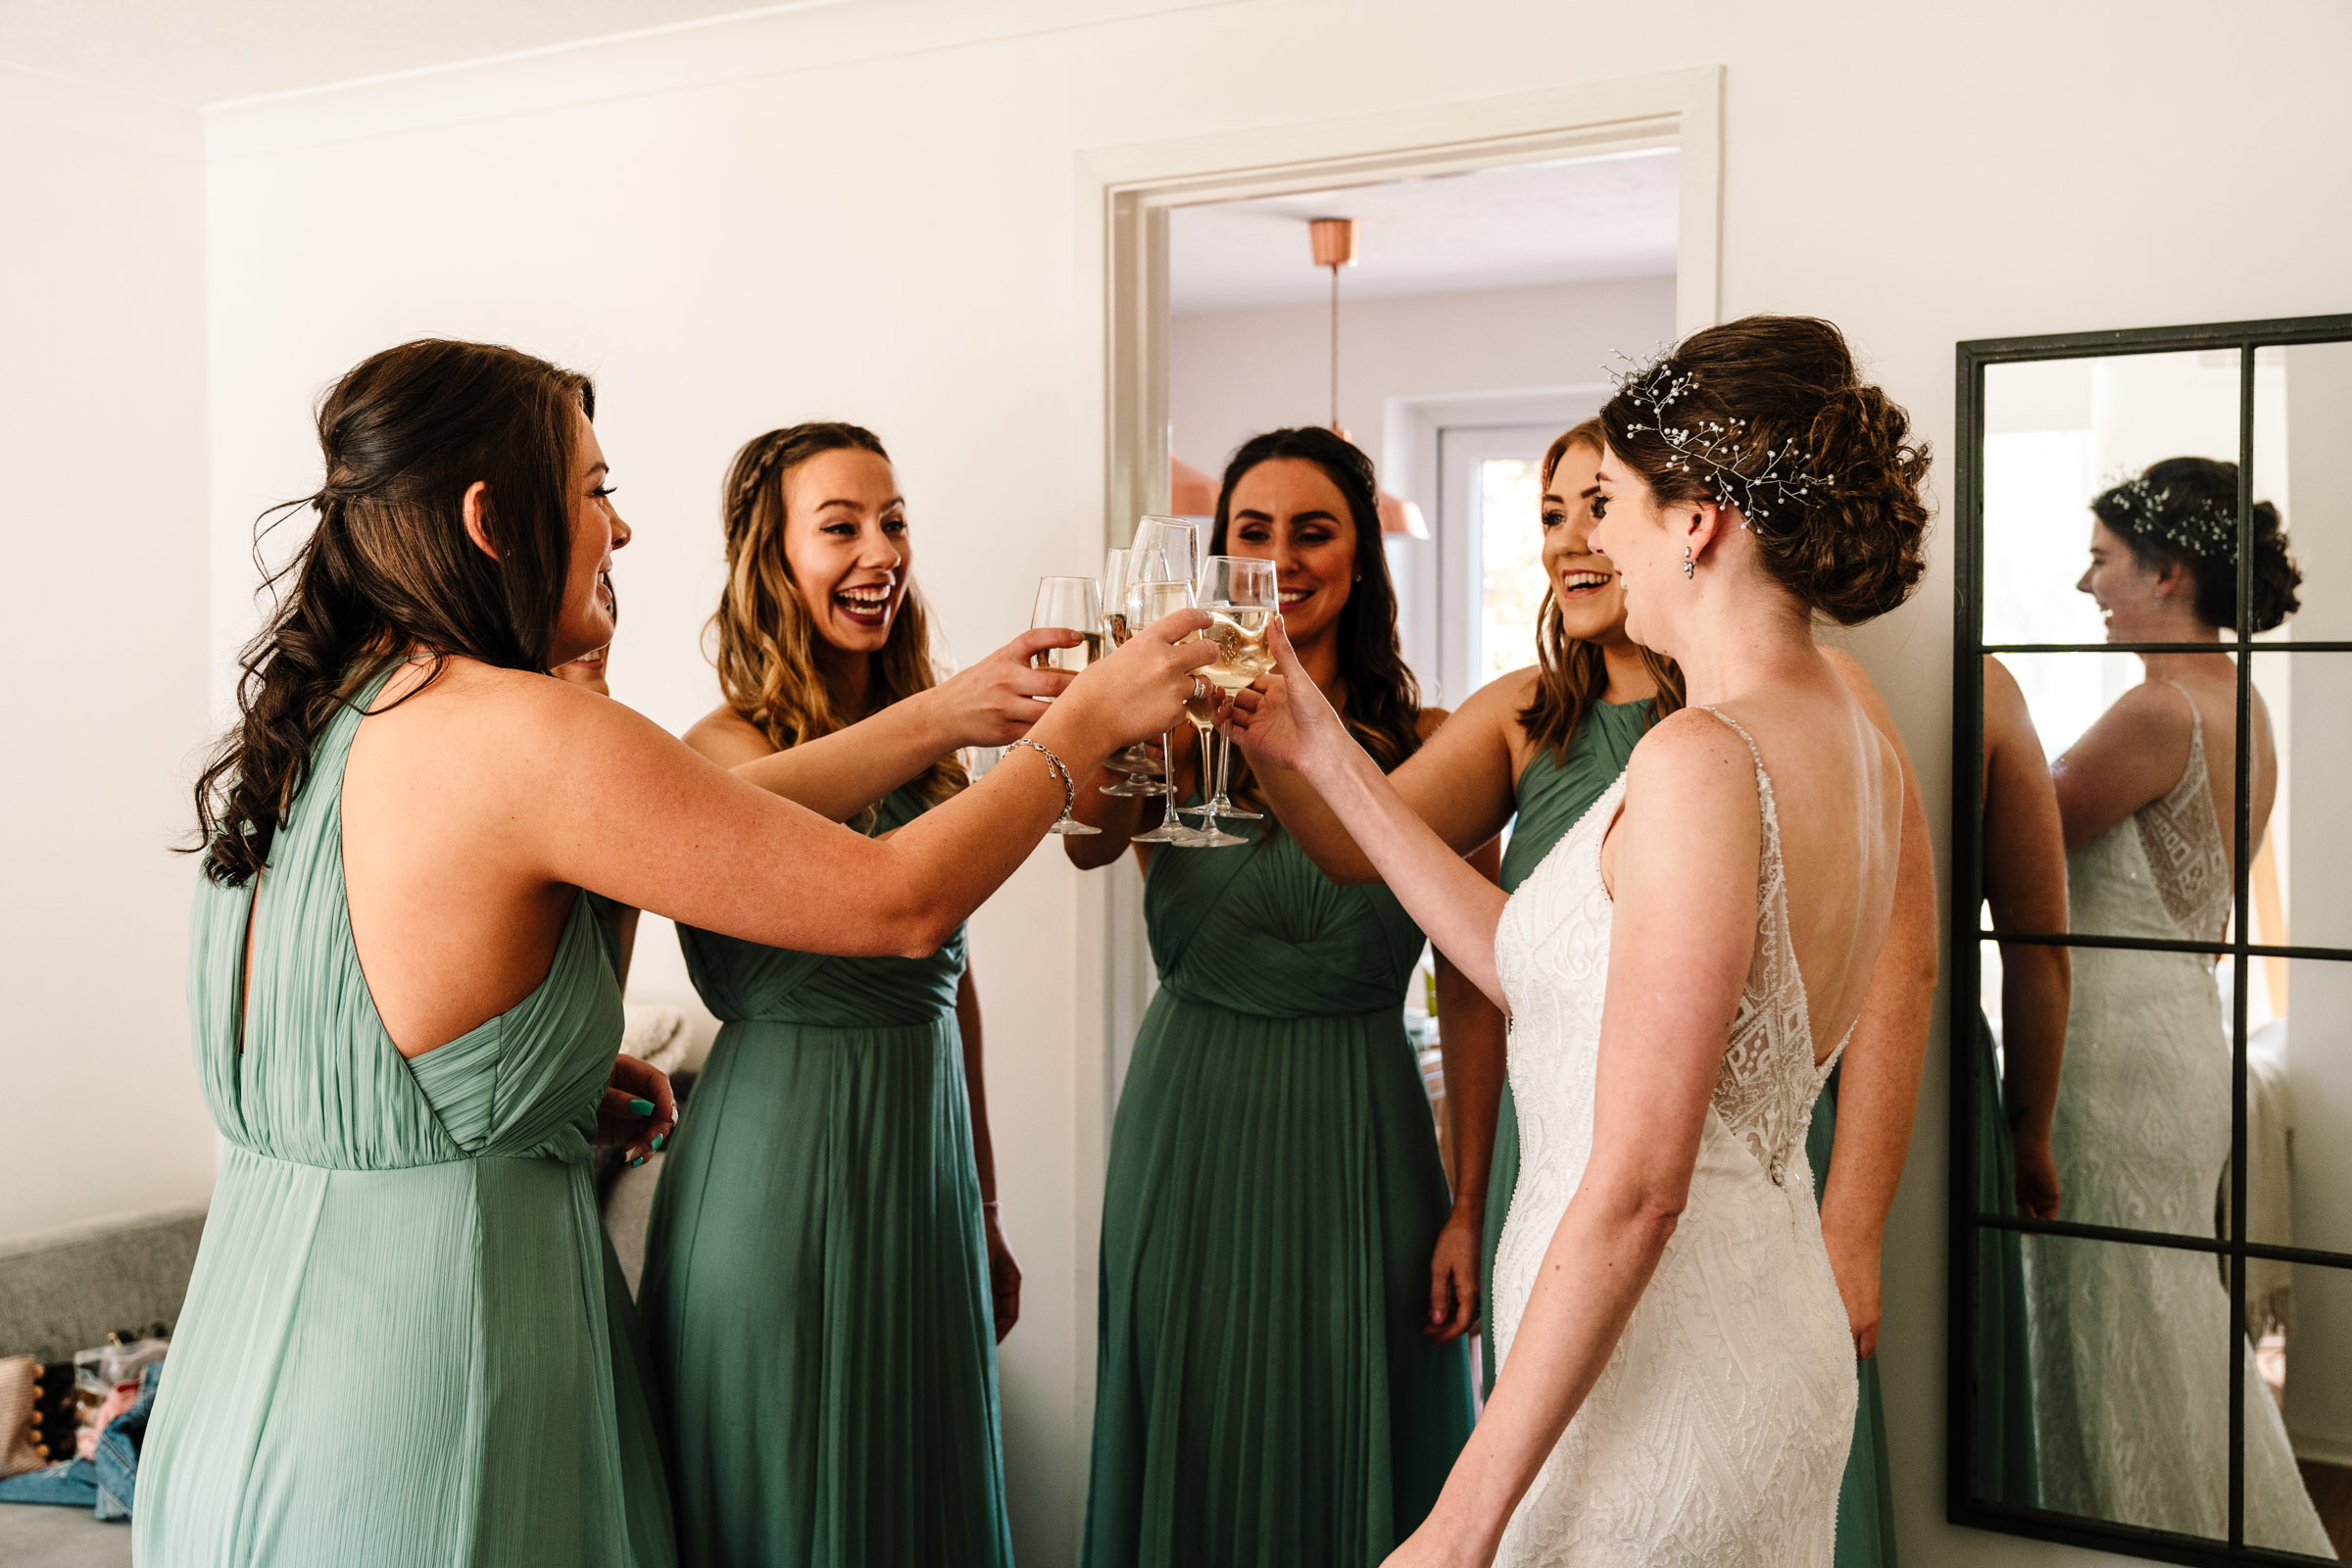 bride and bridesmaids clinking champagne glasses